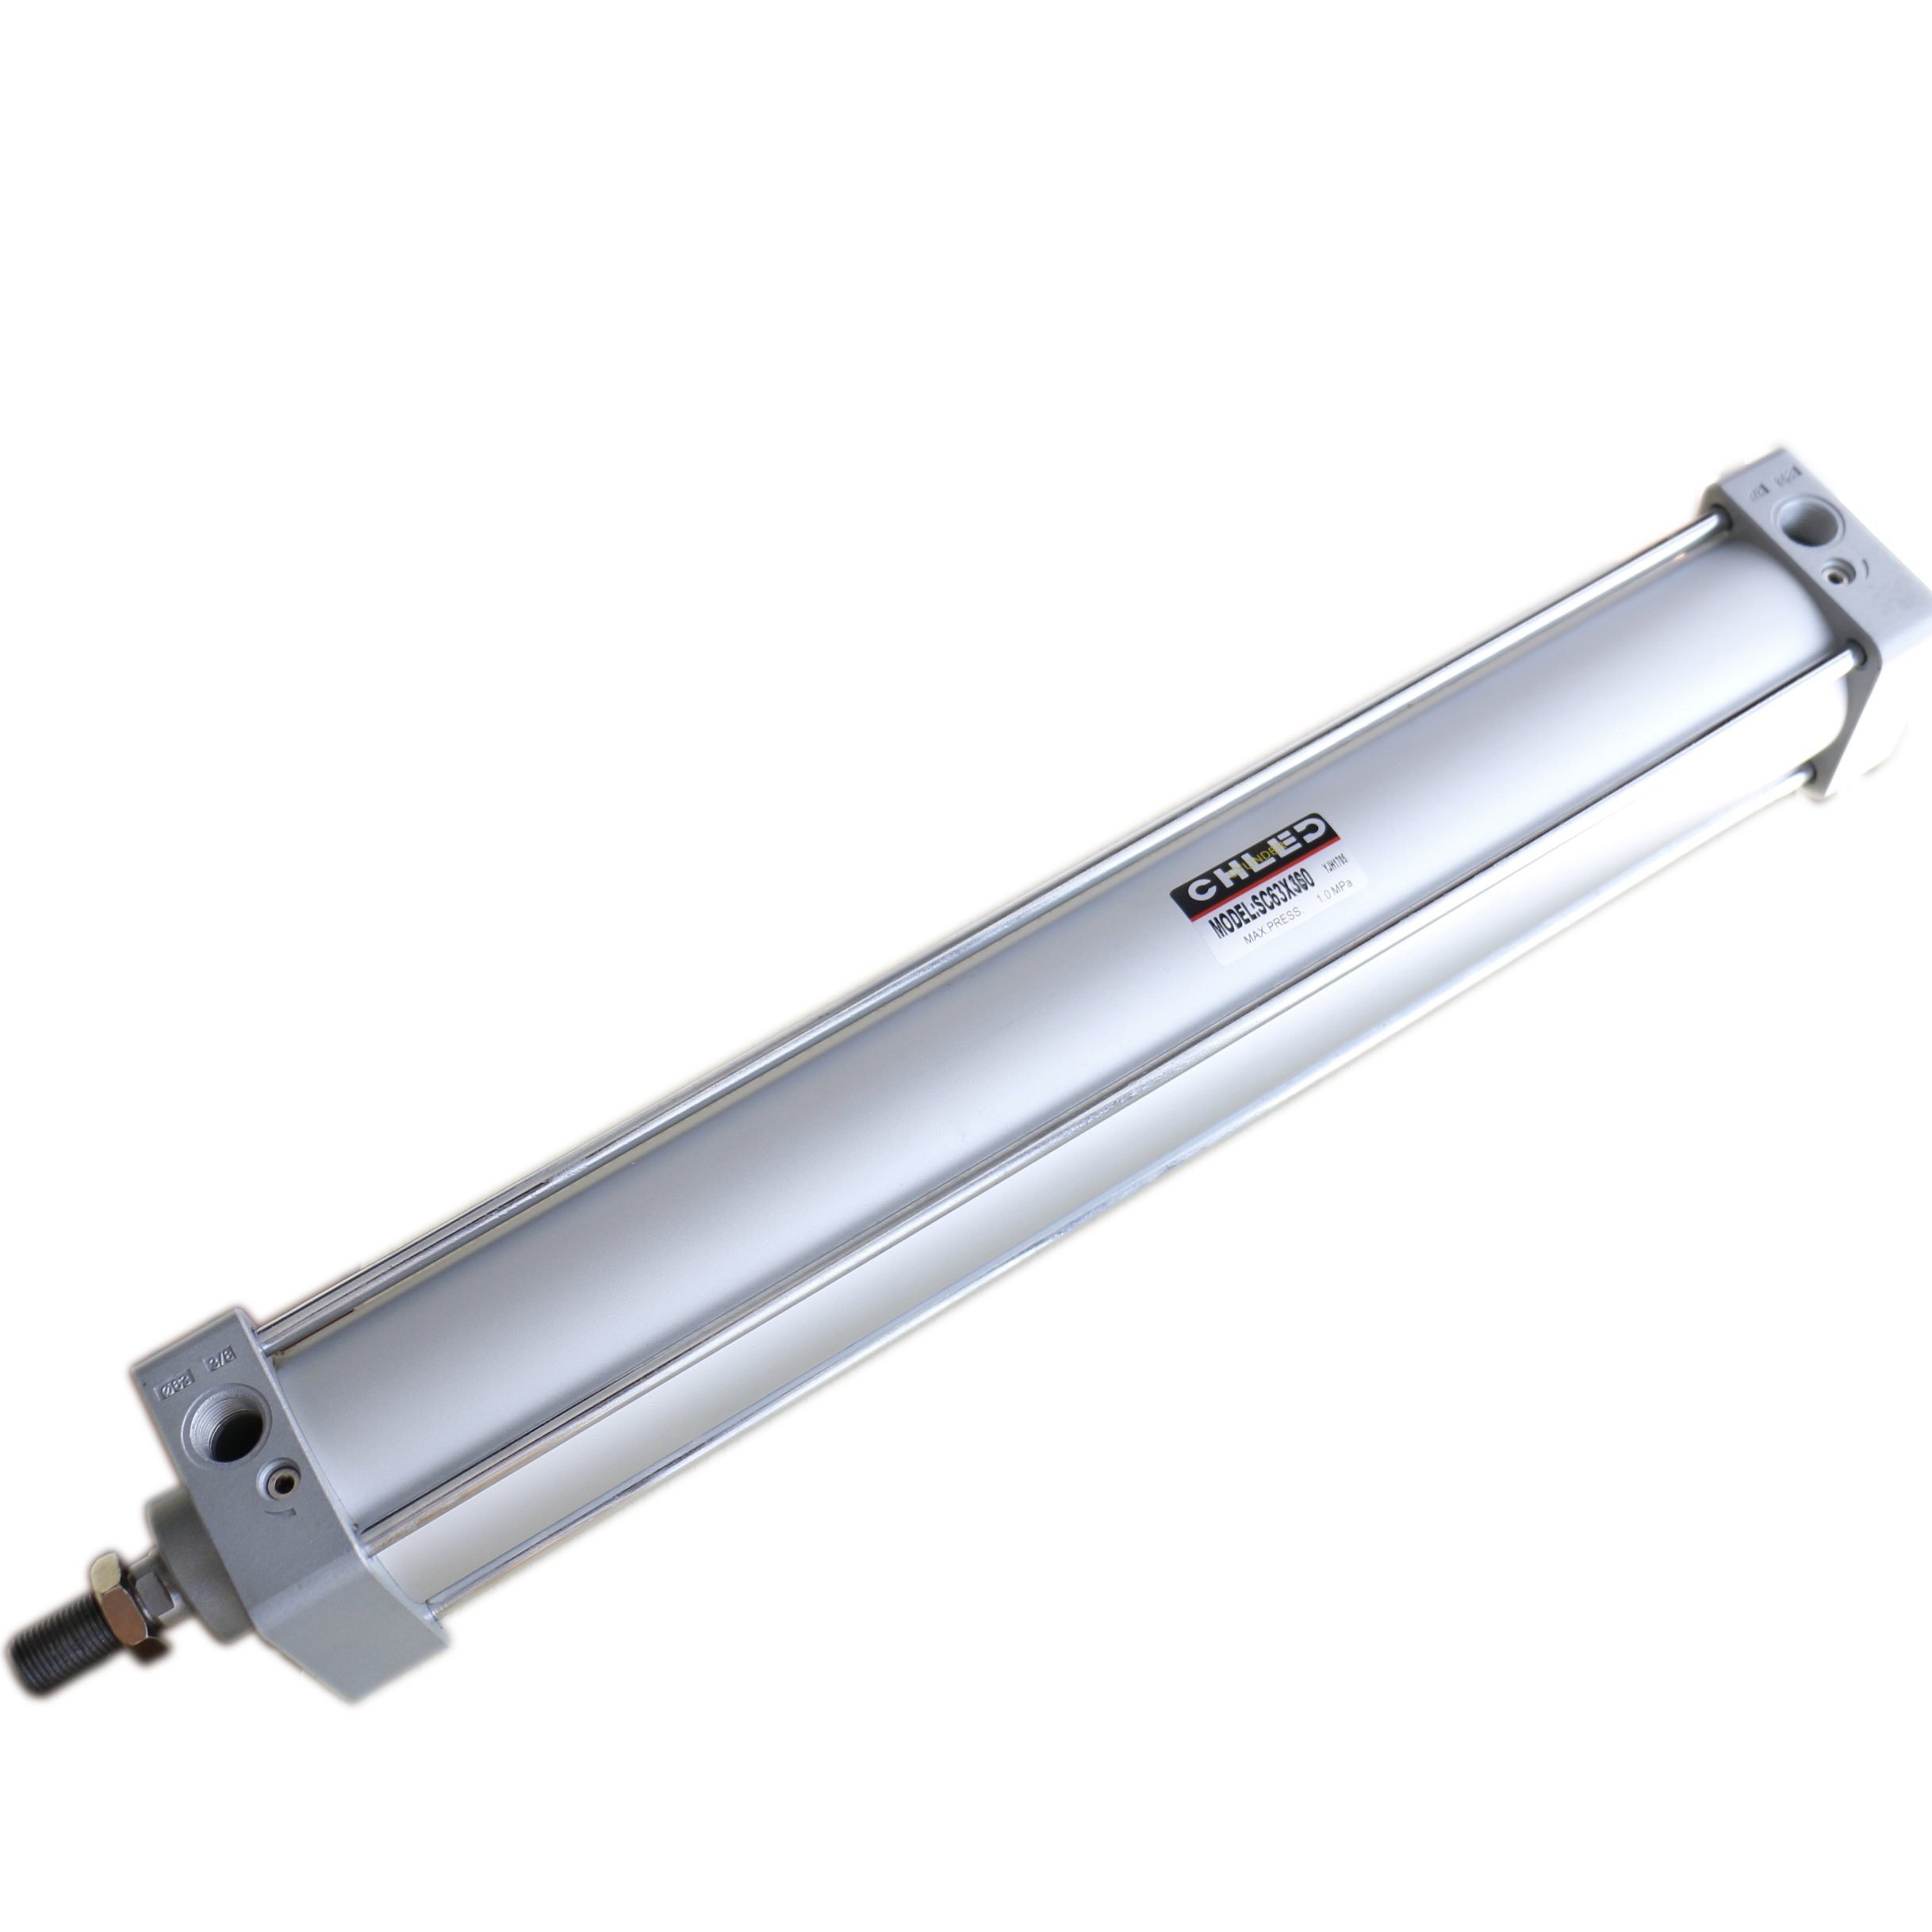 Basic Style Mounting SMC CJ1B4-10U4 Brass Air Cylinder 4 mm Bore OD Compact 2 mm Rod OD No Cushion 4 mm Tube OD Not Switch Ready Double Acting 10 mm Stroke